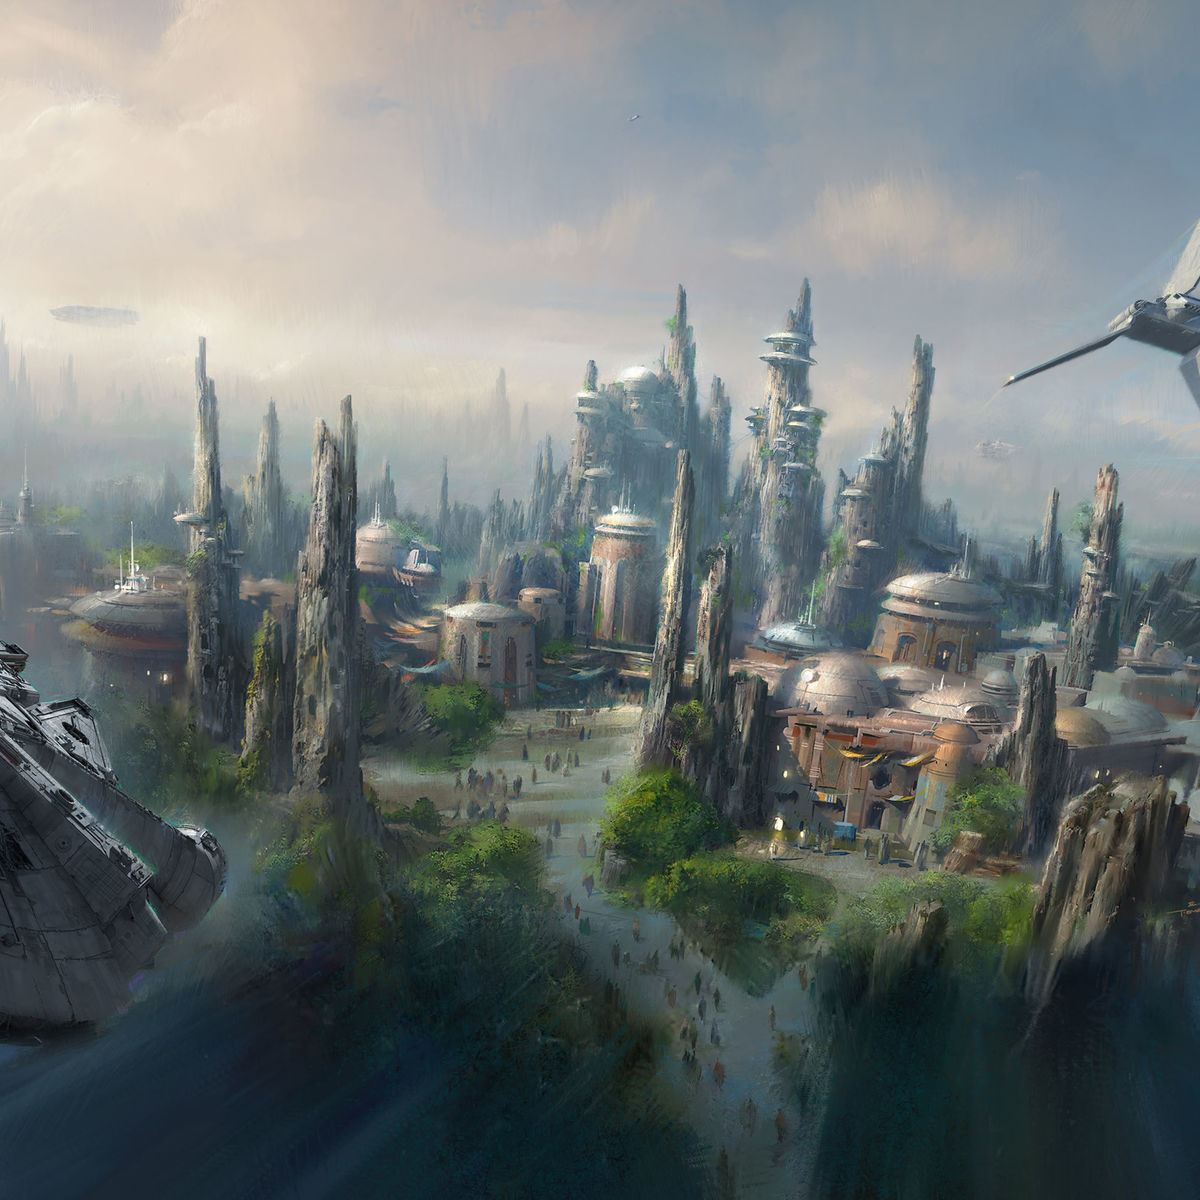 Disneyland hikes ticket prices sky high before Star Wars land opens